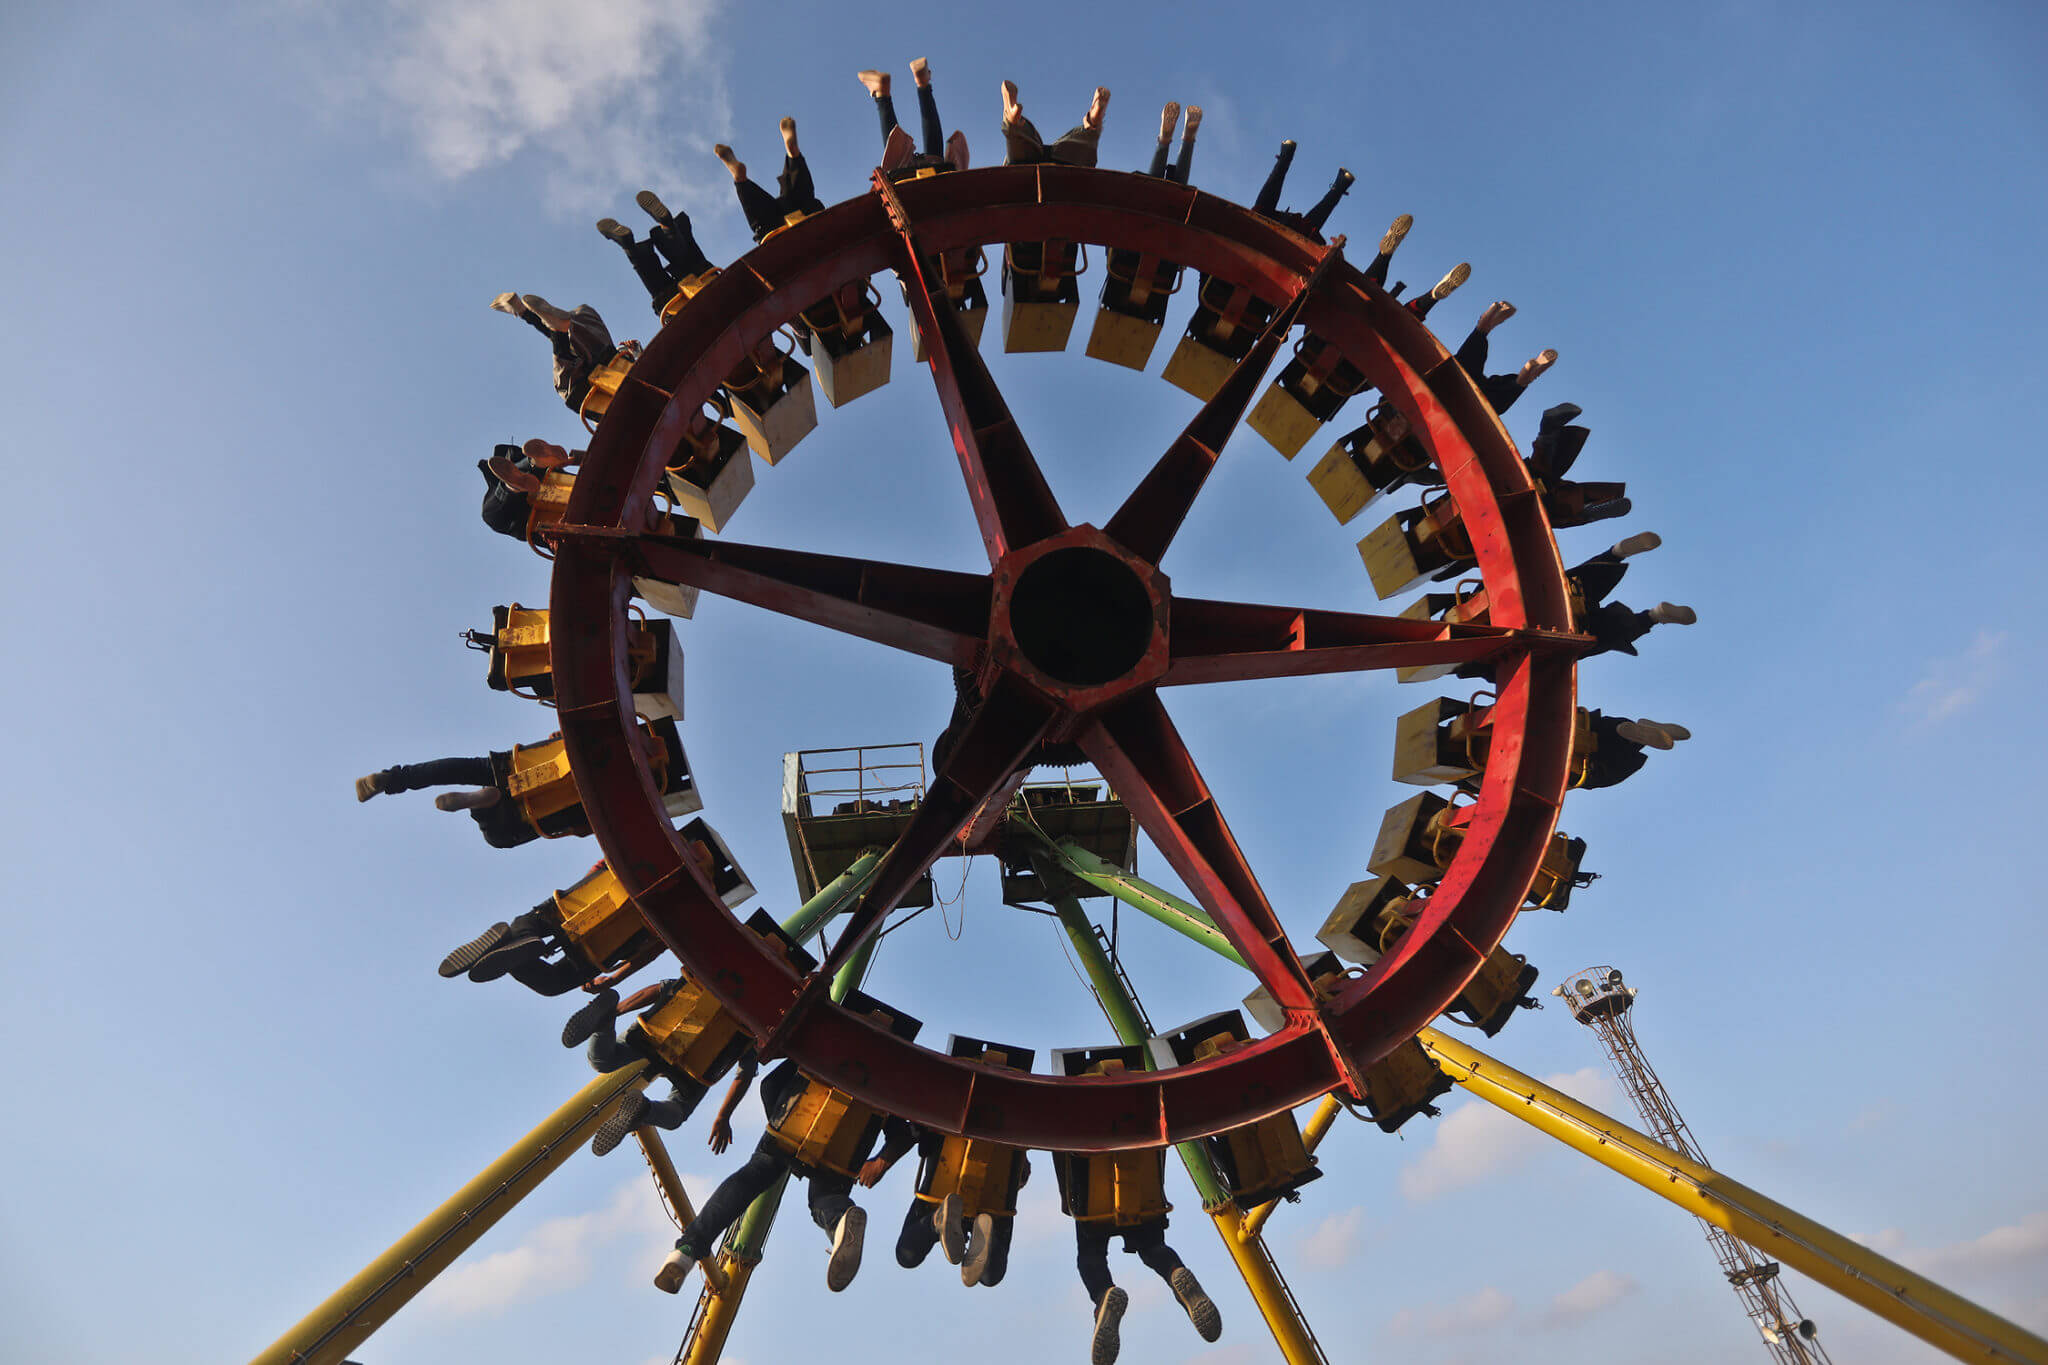 Visitors to Gaza's al-Nour park enjoy the spin-and-swing ride.